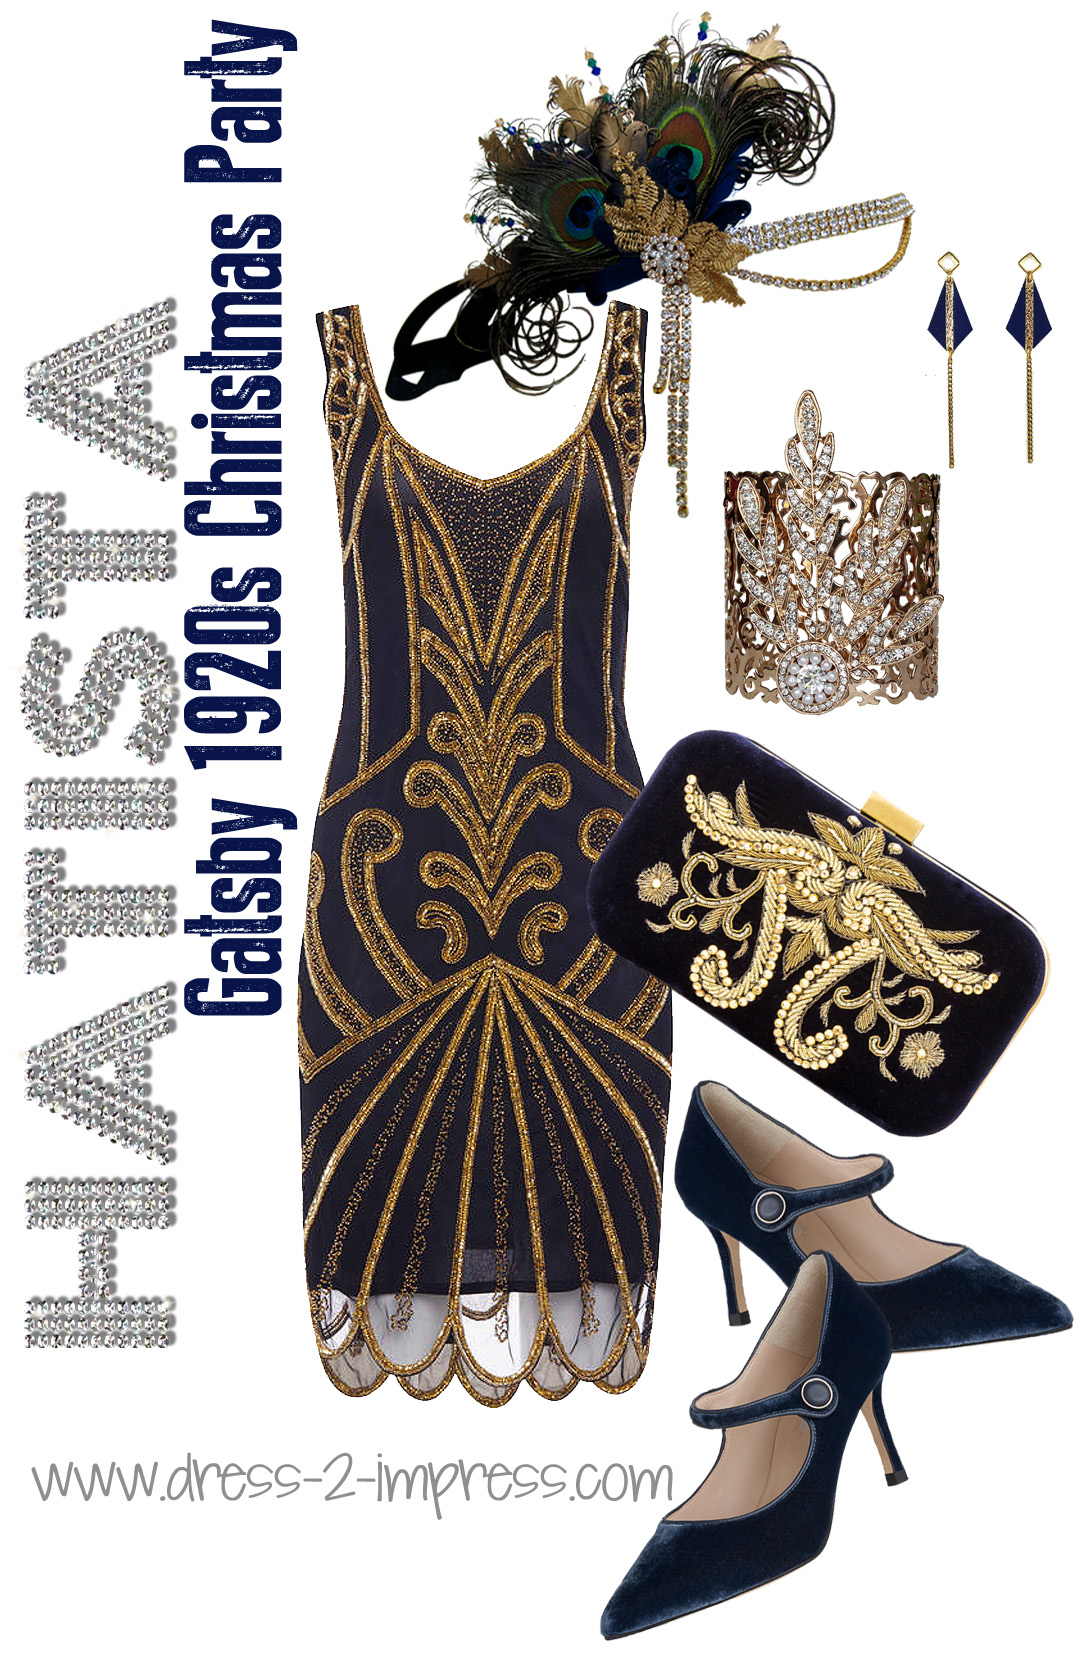 Great Gatsby Party Ideas, What to wear to a 1920s Theme Party. Christmas or Birthday Party - Outfit Inspiration for 1920s Fashion from THE HATISTA www.dress-2-impress.com Art Deco Fashion, 1920s Dress, Gatsby Fancy Dress,  #1920s #gatsbyheadpiece #headband #outfits #ootd #fashion #fashionista #newyearseve #christmasparty